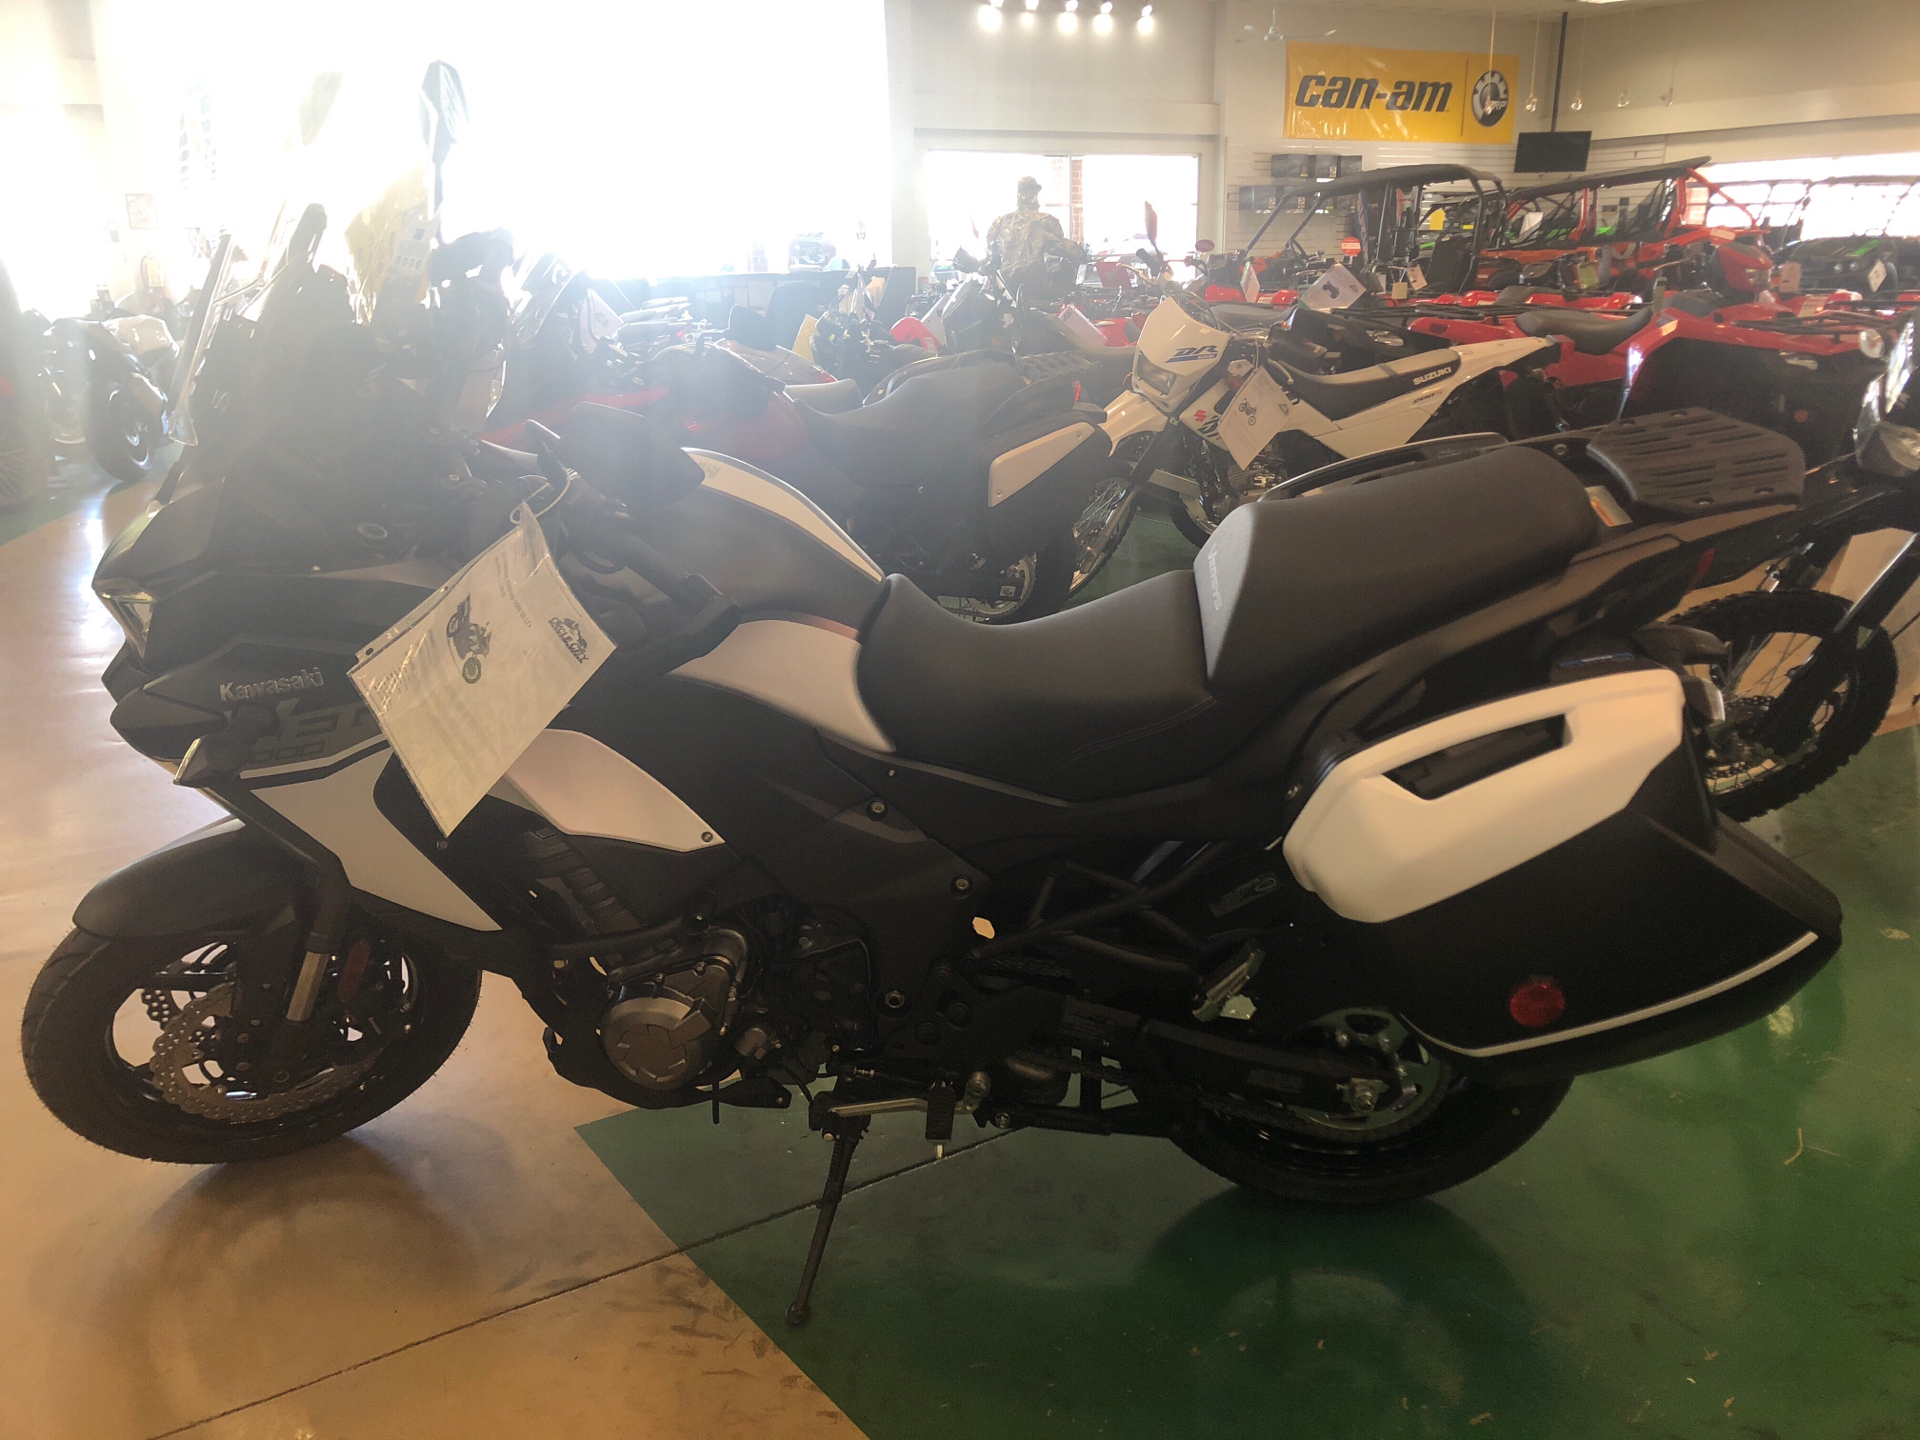 2019 Kawasaki Versys 1000 SE LT+ in Newnan, Georgia - Photo 1